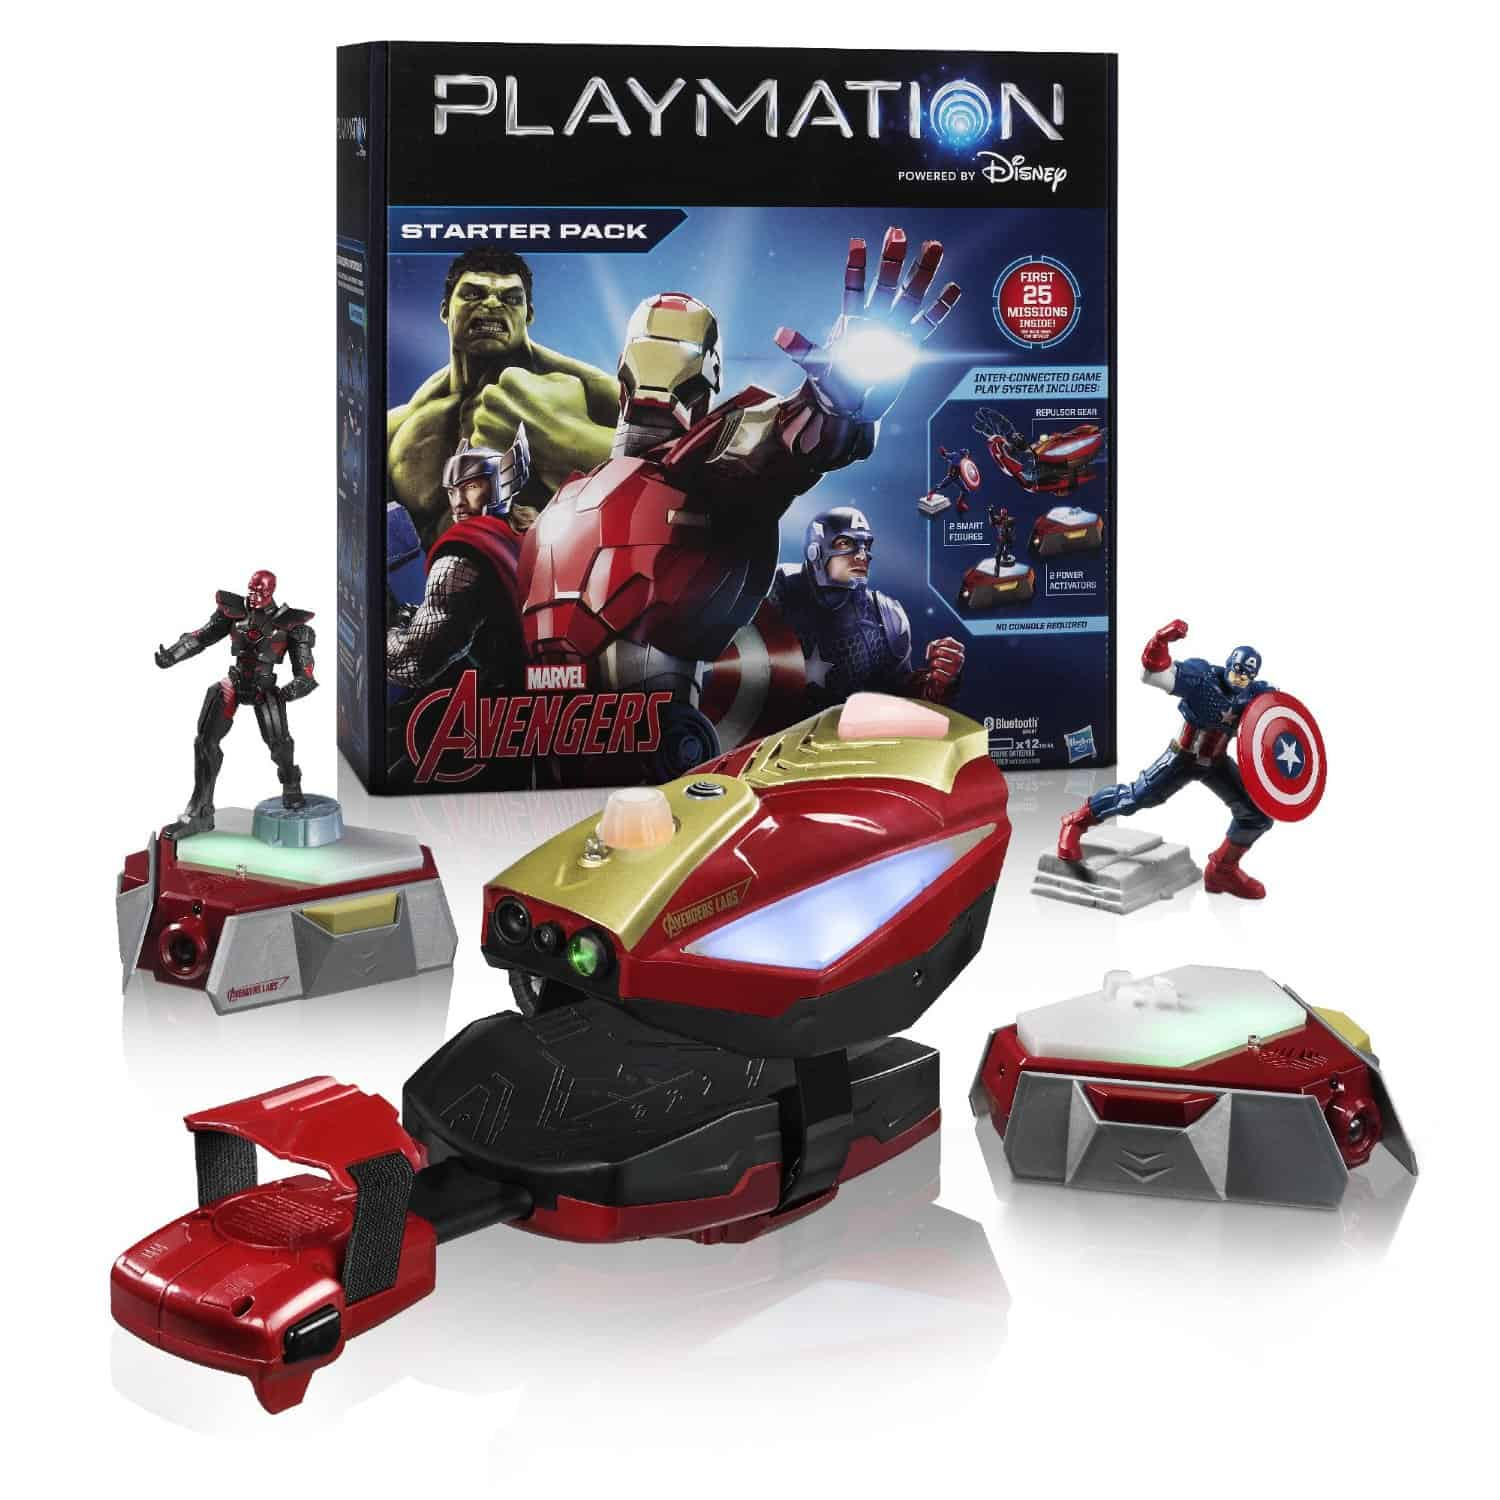 Playmation Marvel Avengers Pretend Play Gifts for Kids